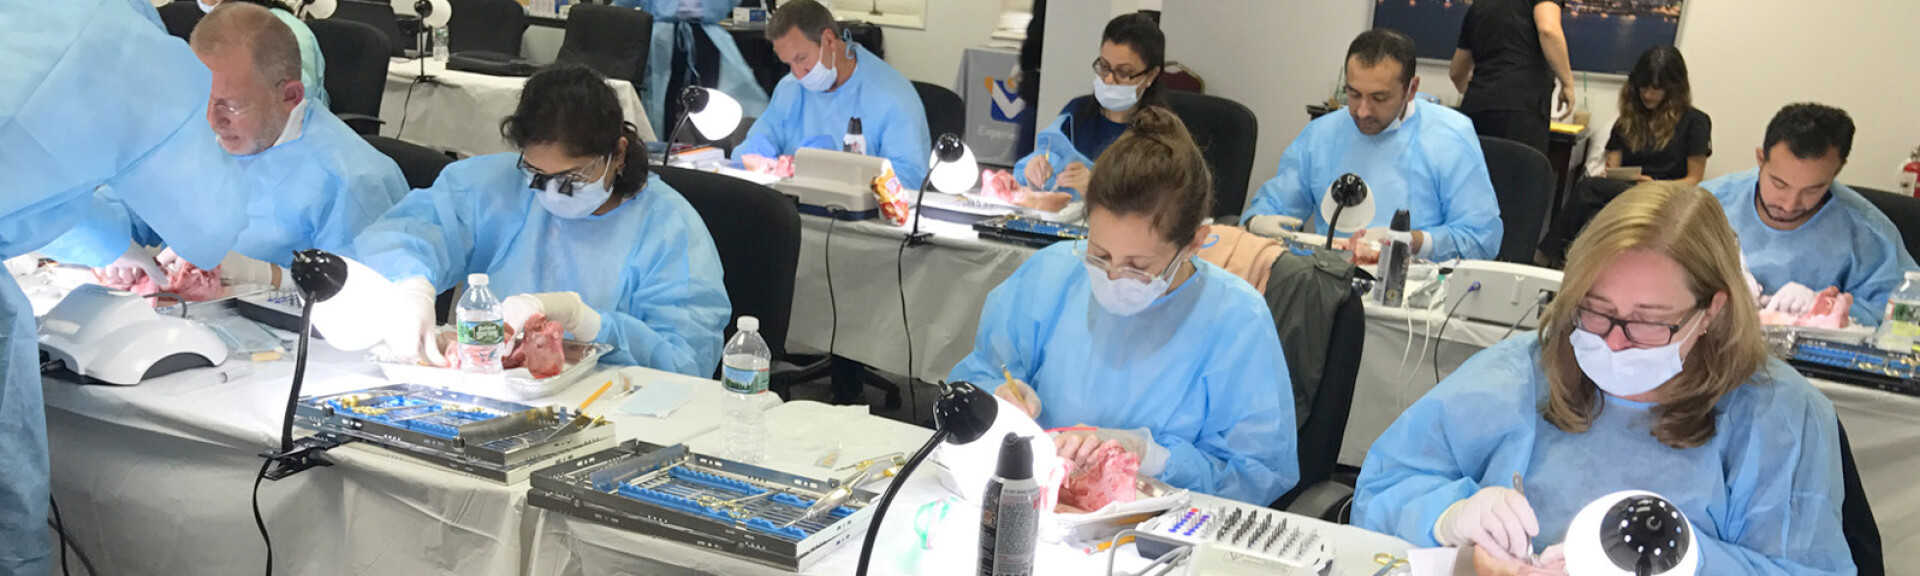 dental students practicing procedure on pig jaws